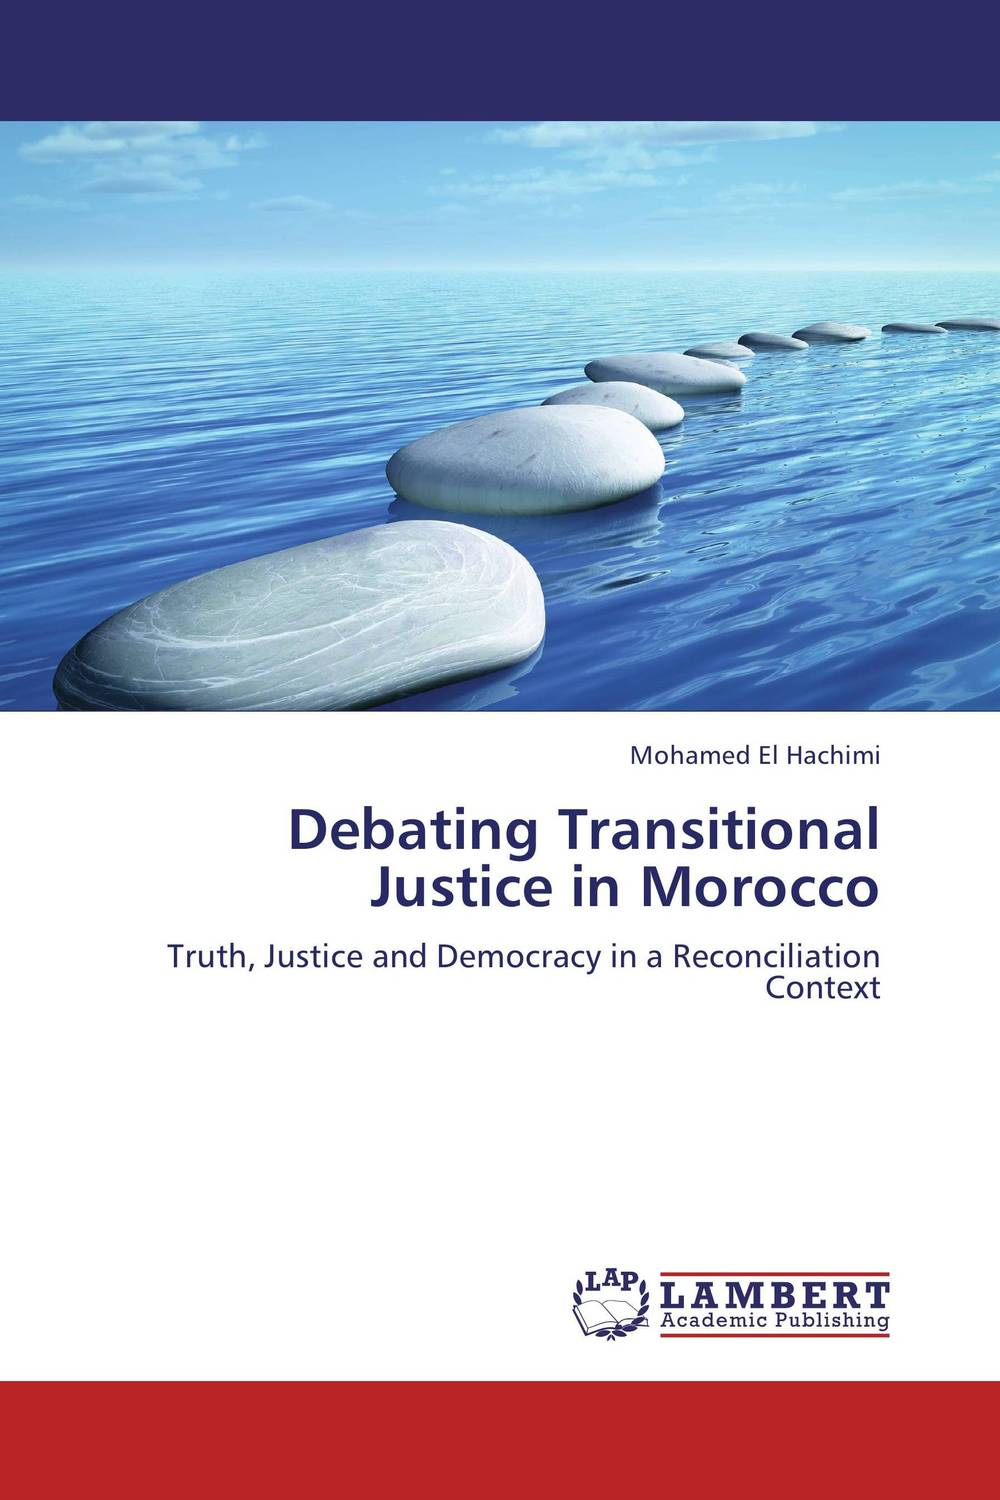 Debating Transitional Justice in Morocco voluntary associations in tsarist russia – science patriotism and civil society